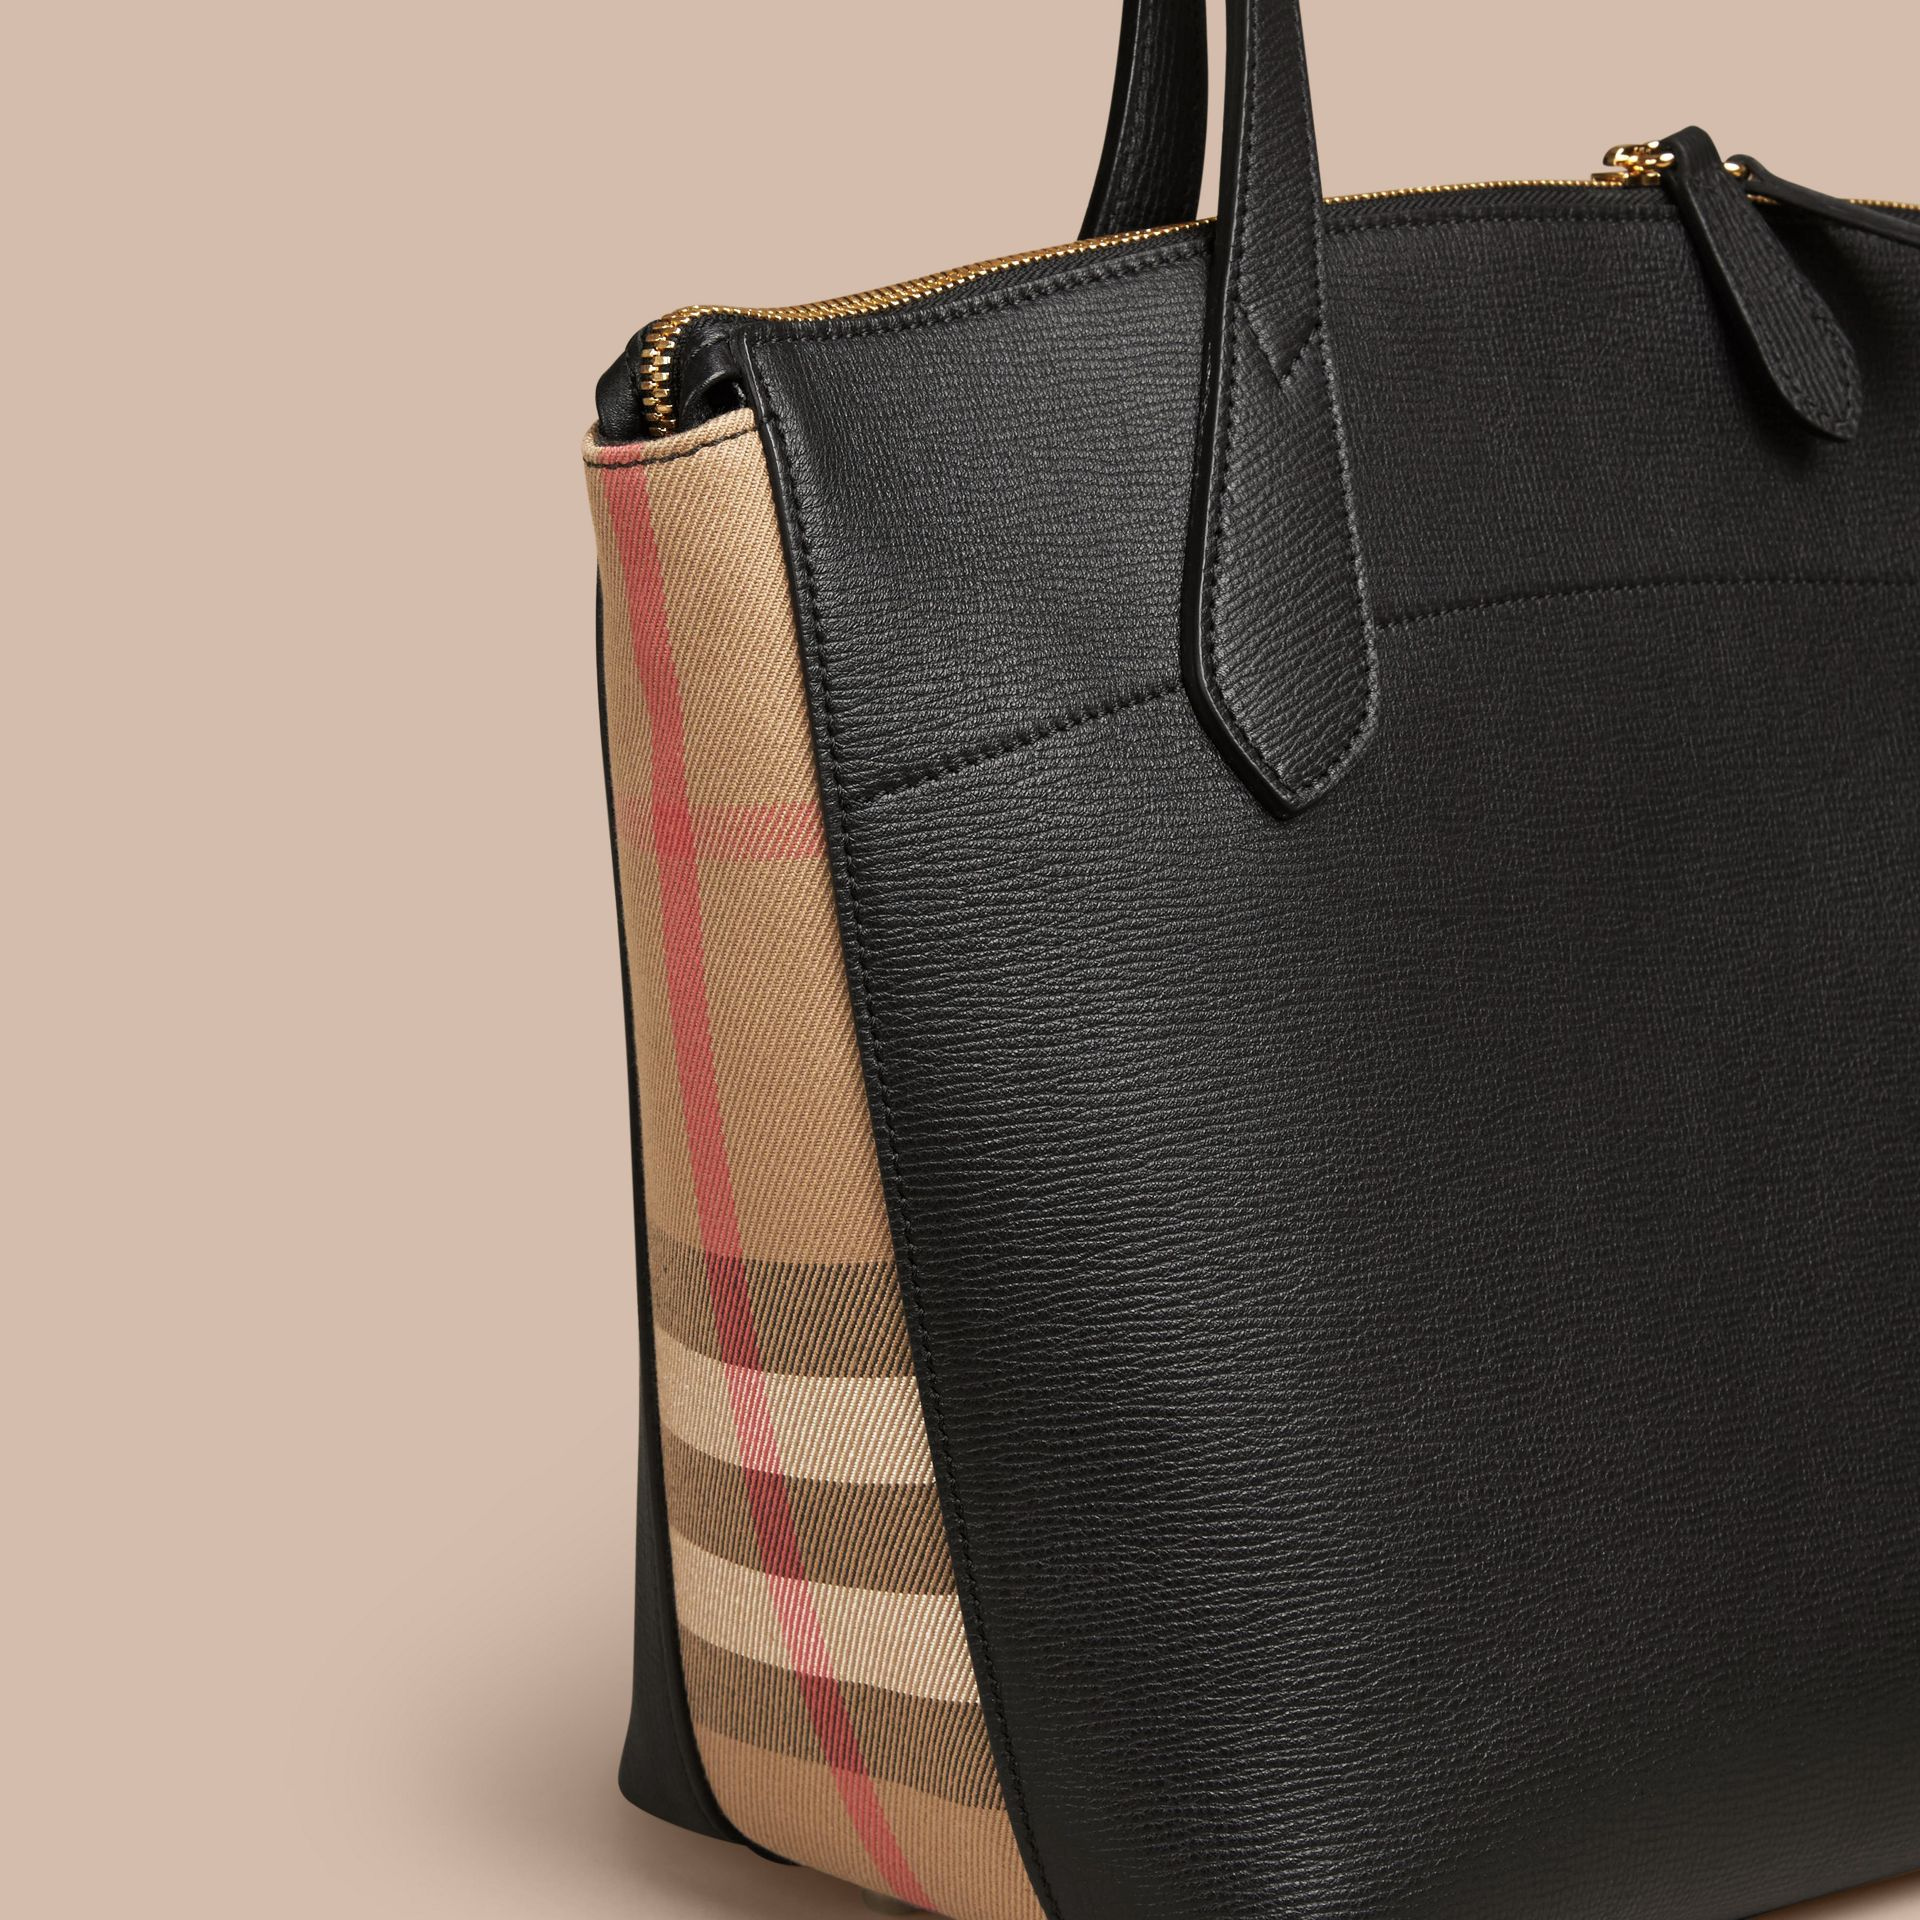 Sac tote medium en cuir et coton House check - Femme | Burberry - photo de la galerie 6